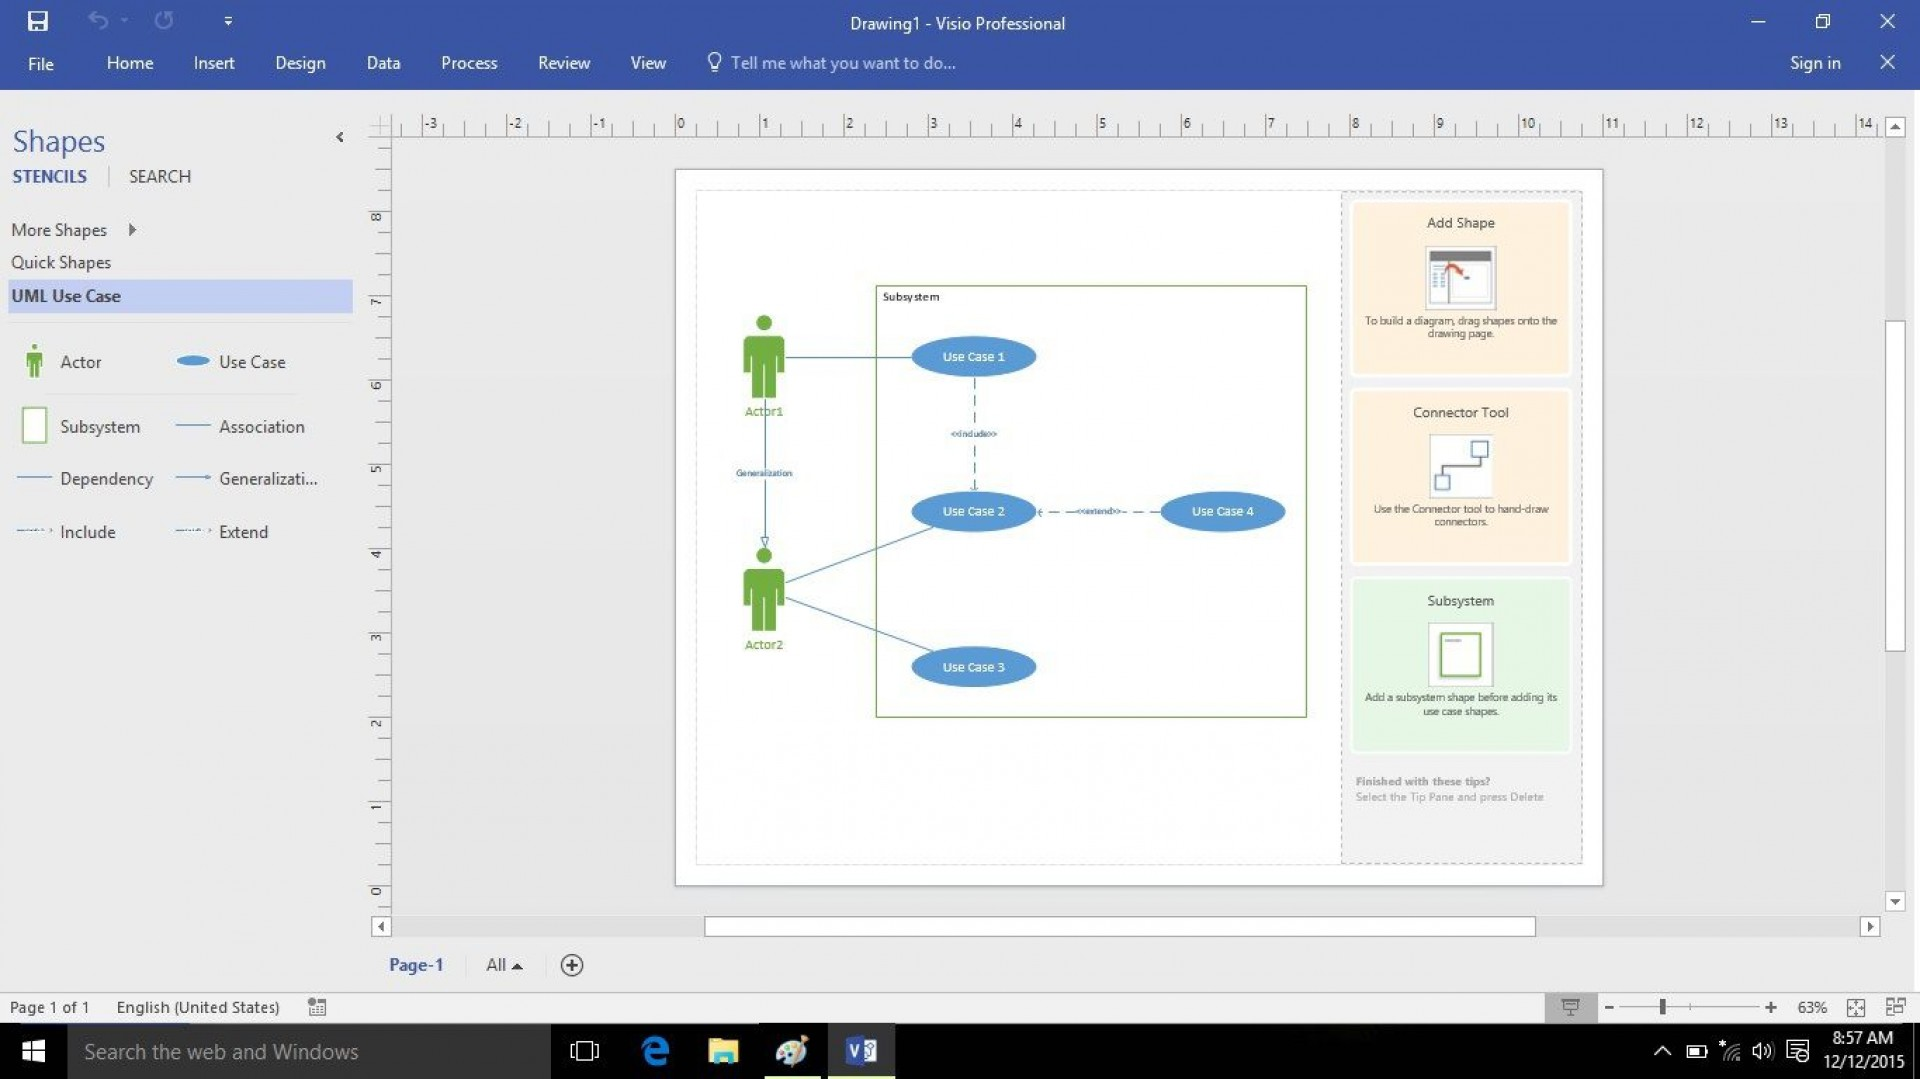 010 Remarkable Use Case Diagram Microsoft Visio 2010 Example 1920